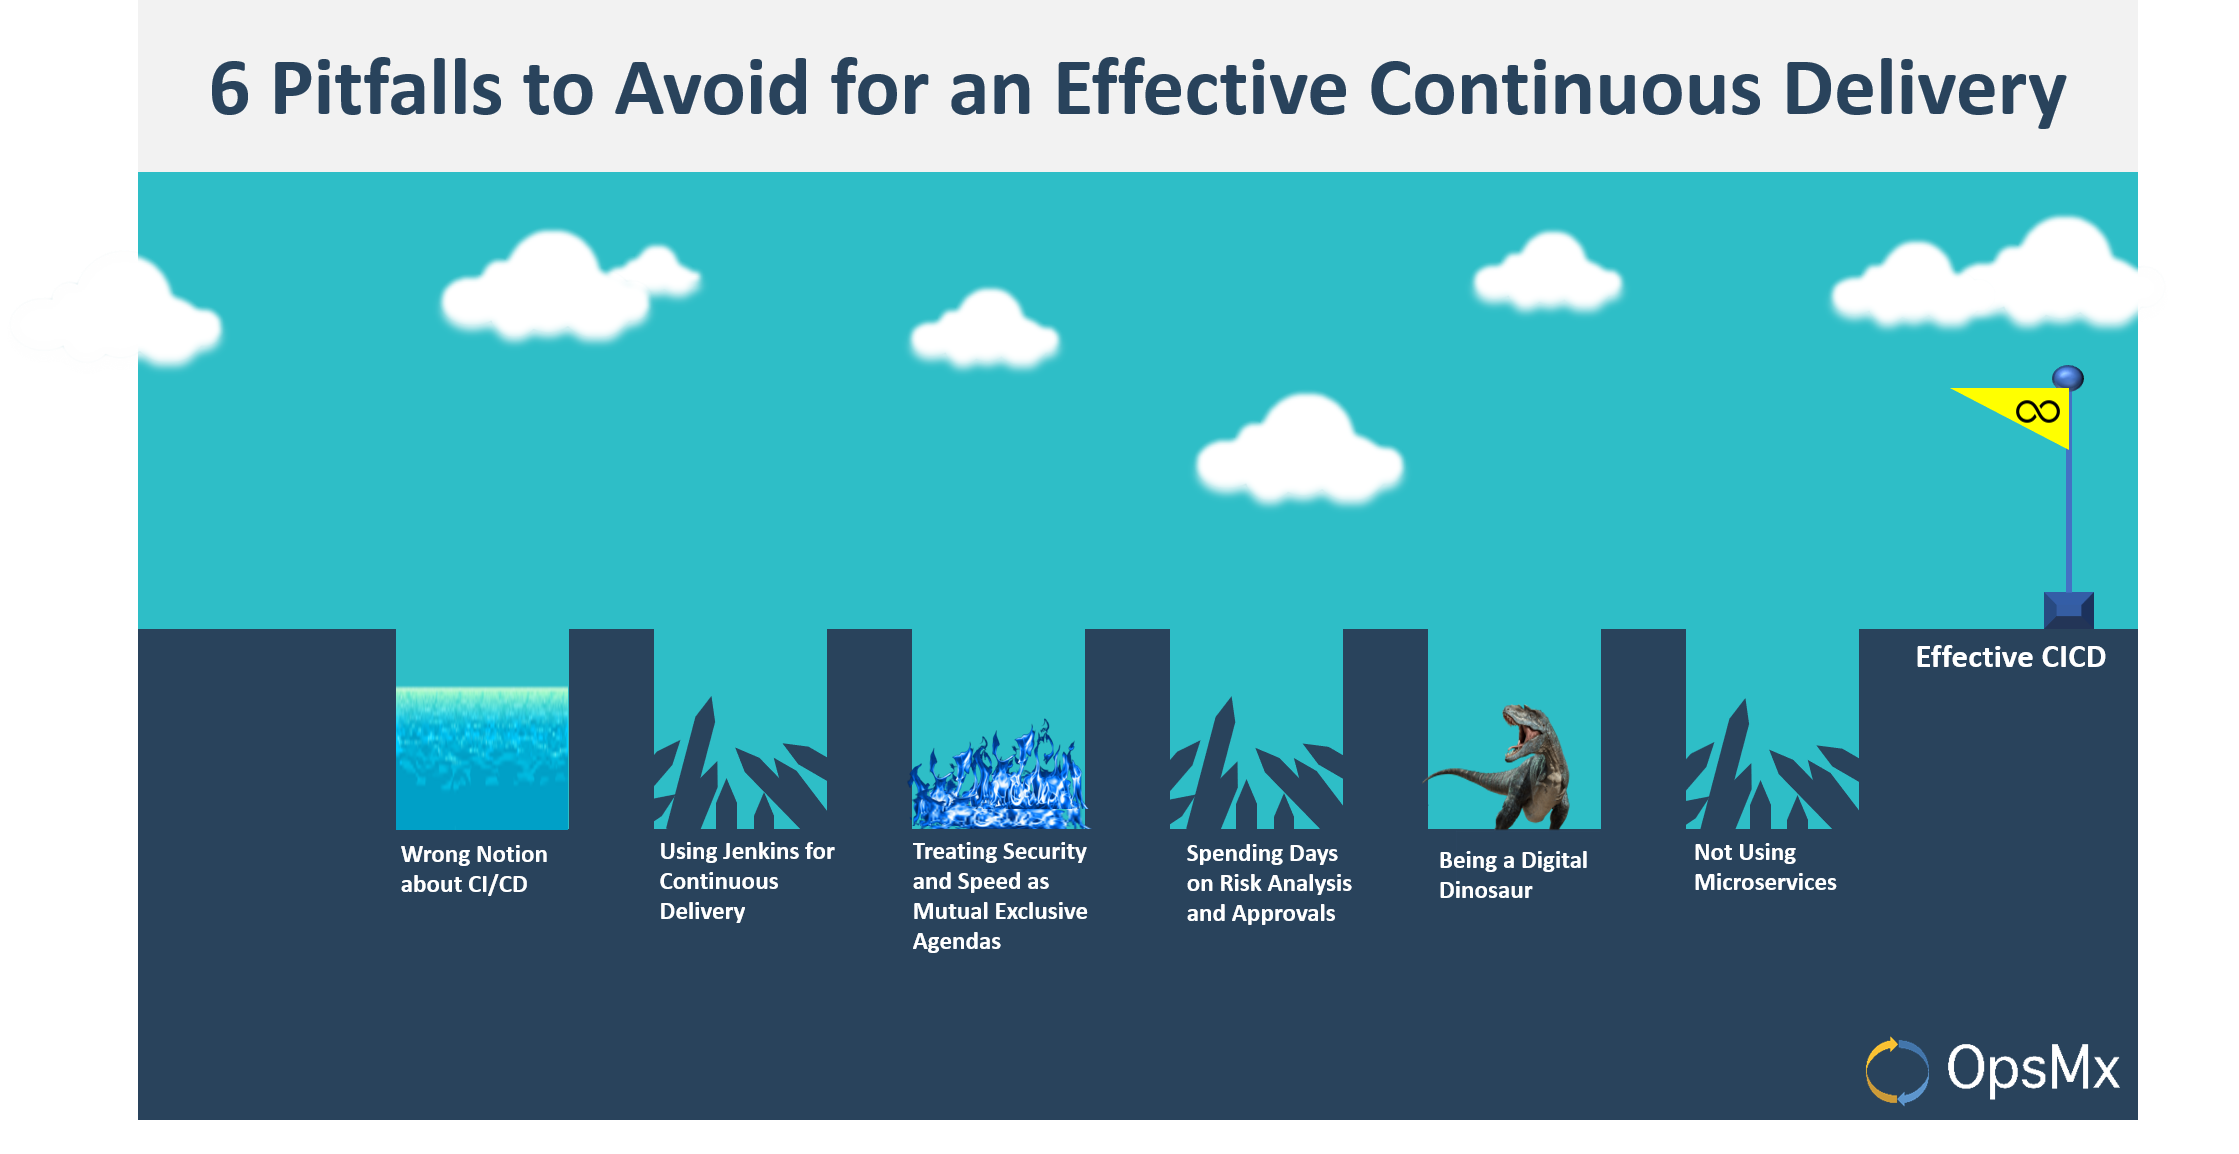 6 Pitfalls to avoid for an effective Continuous Delivery